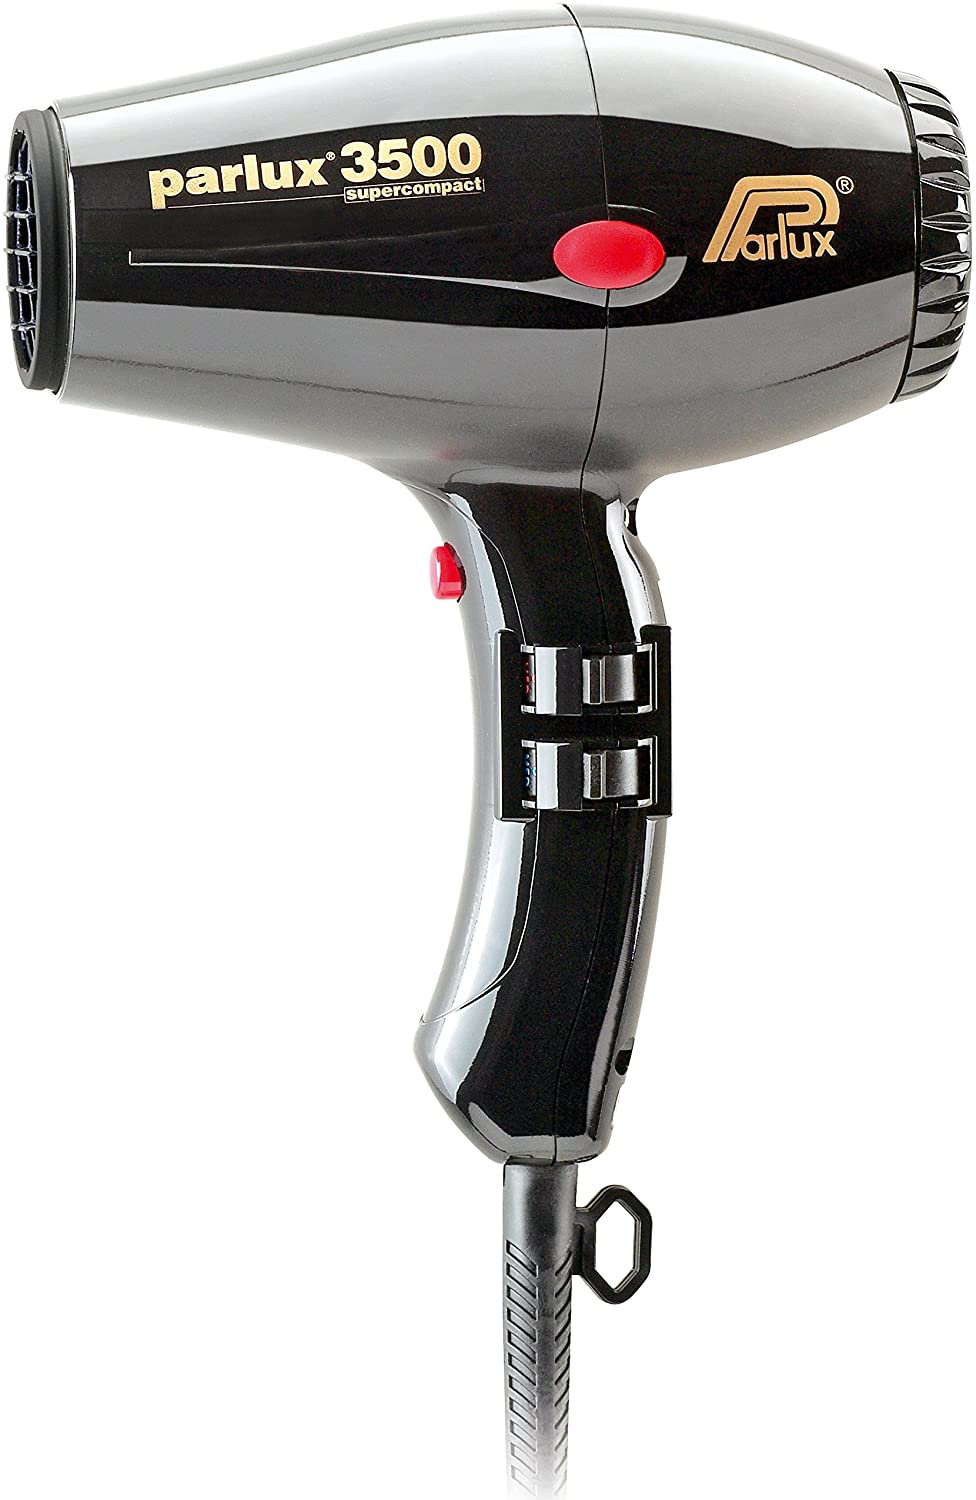 Parlux 3500 Super Compact Travel Hair Dryer